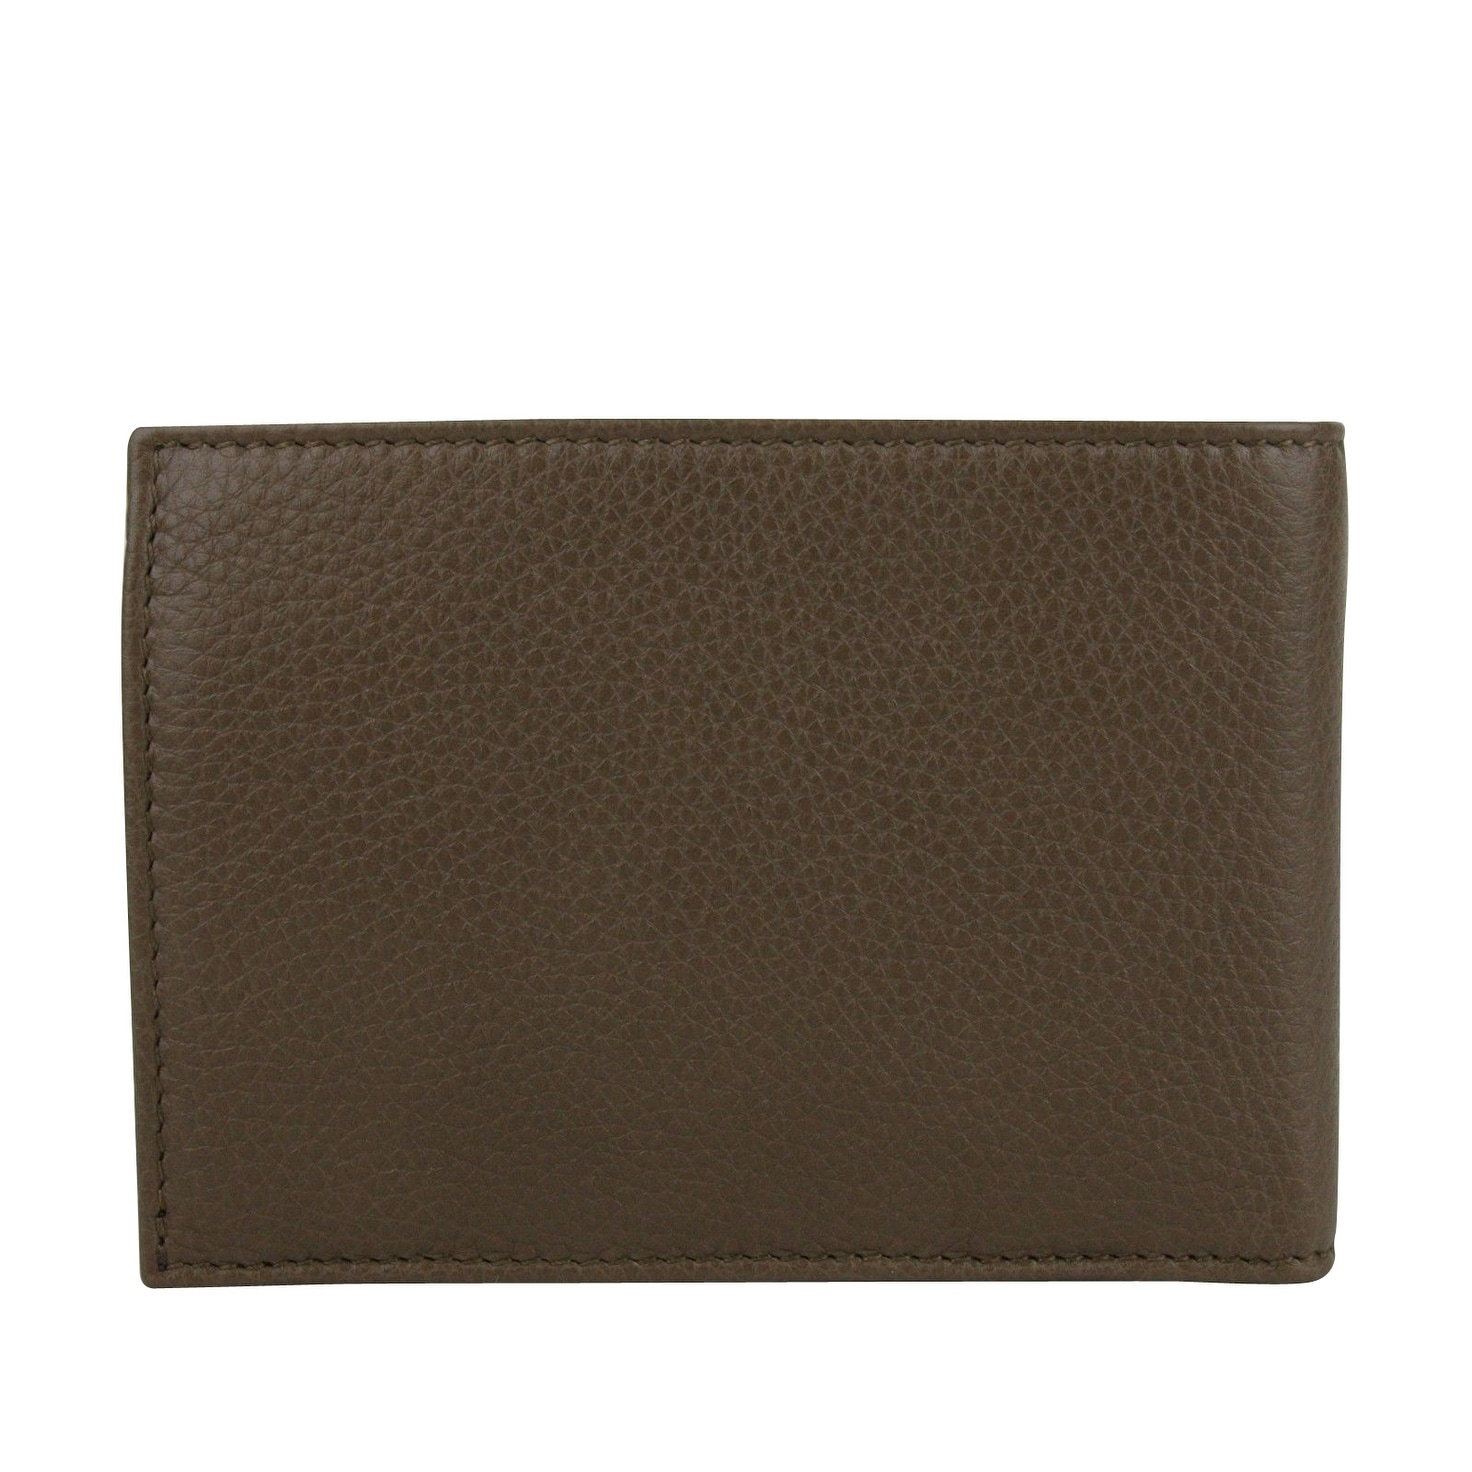 093618fdc9e202 Shop Gucci Bifold Brown Leather Wallet With Logo and Coin Pocket 292534  2527 - One size - Free Shipping Today - Overstock - 28031782